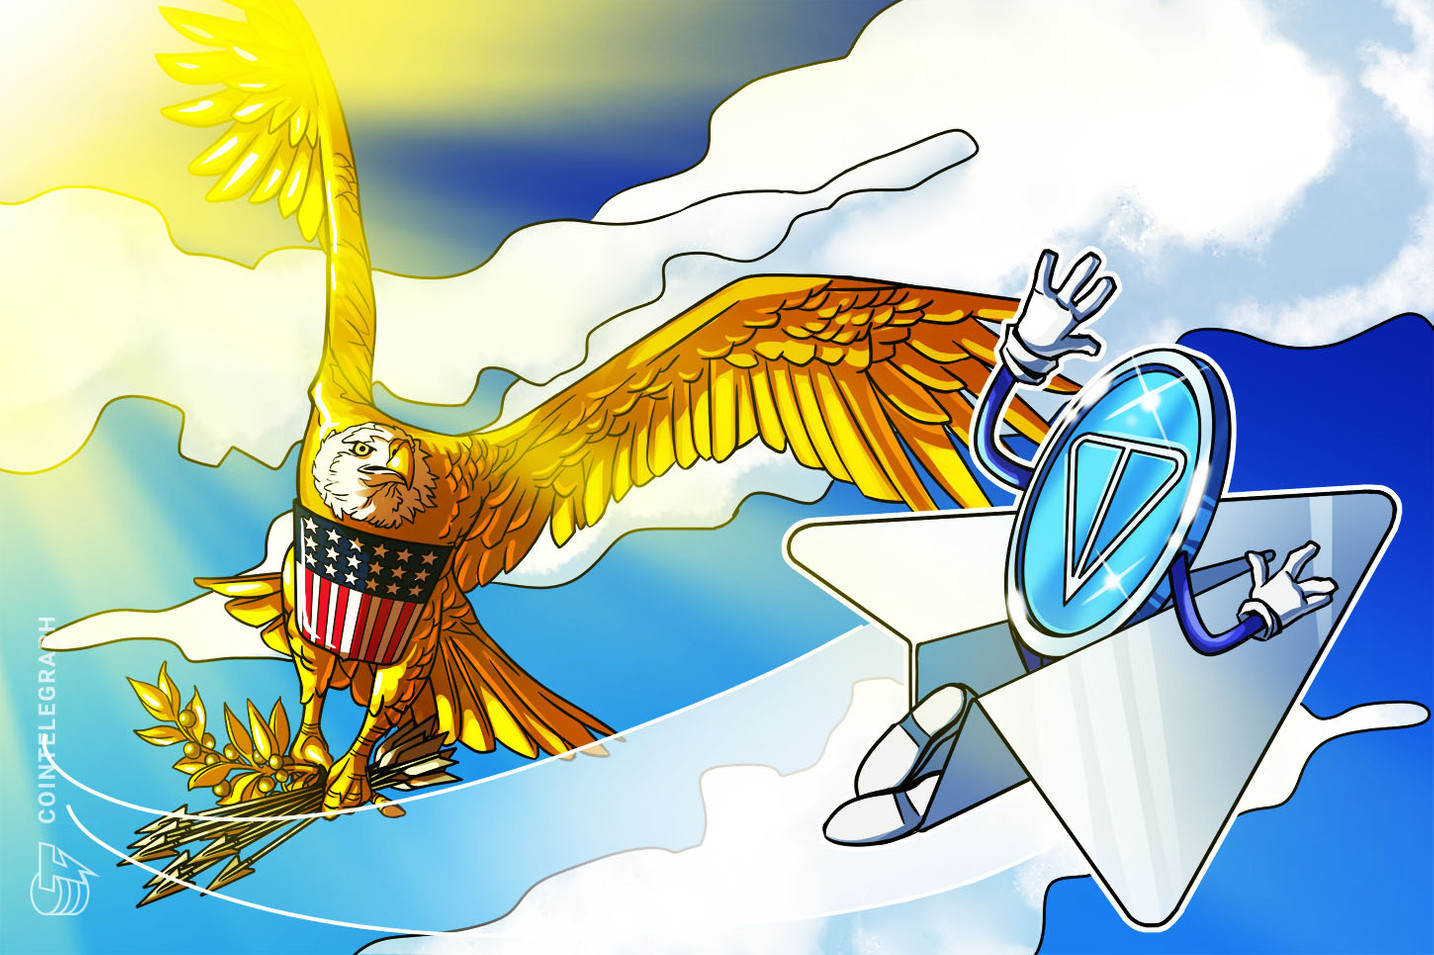 SEC vs. Telegram: Part 1 — Key takeaways for now